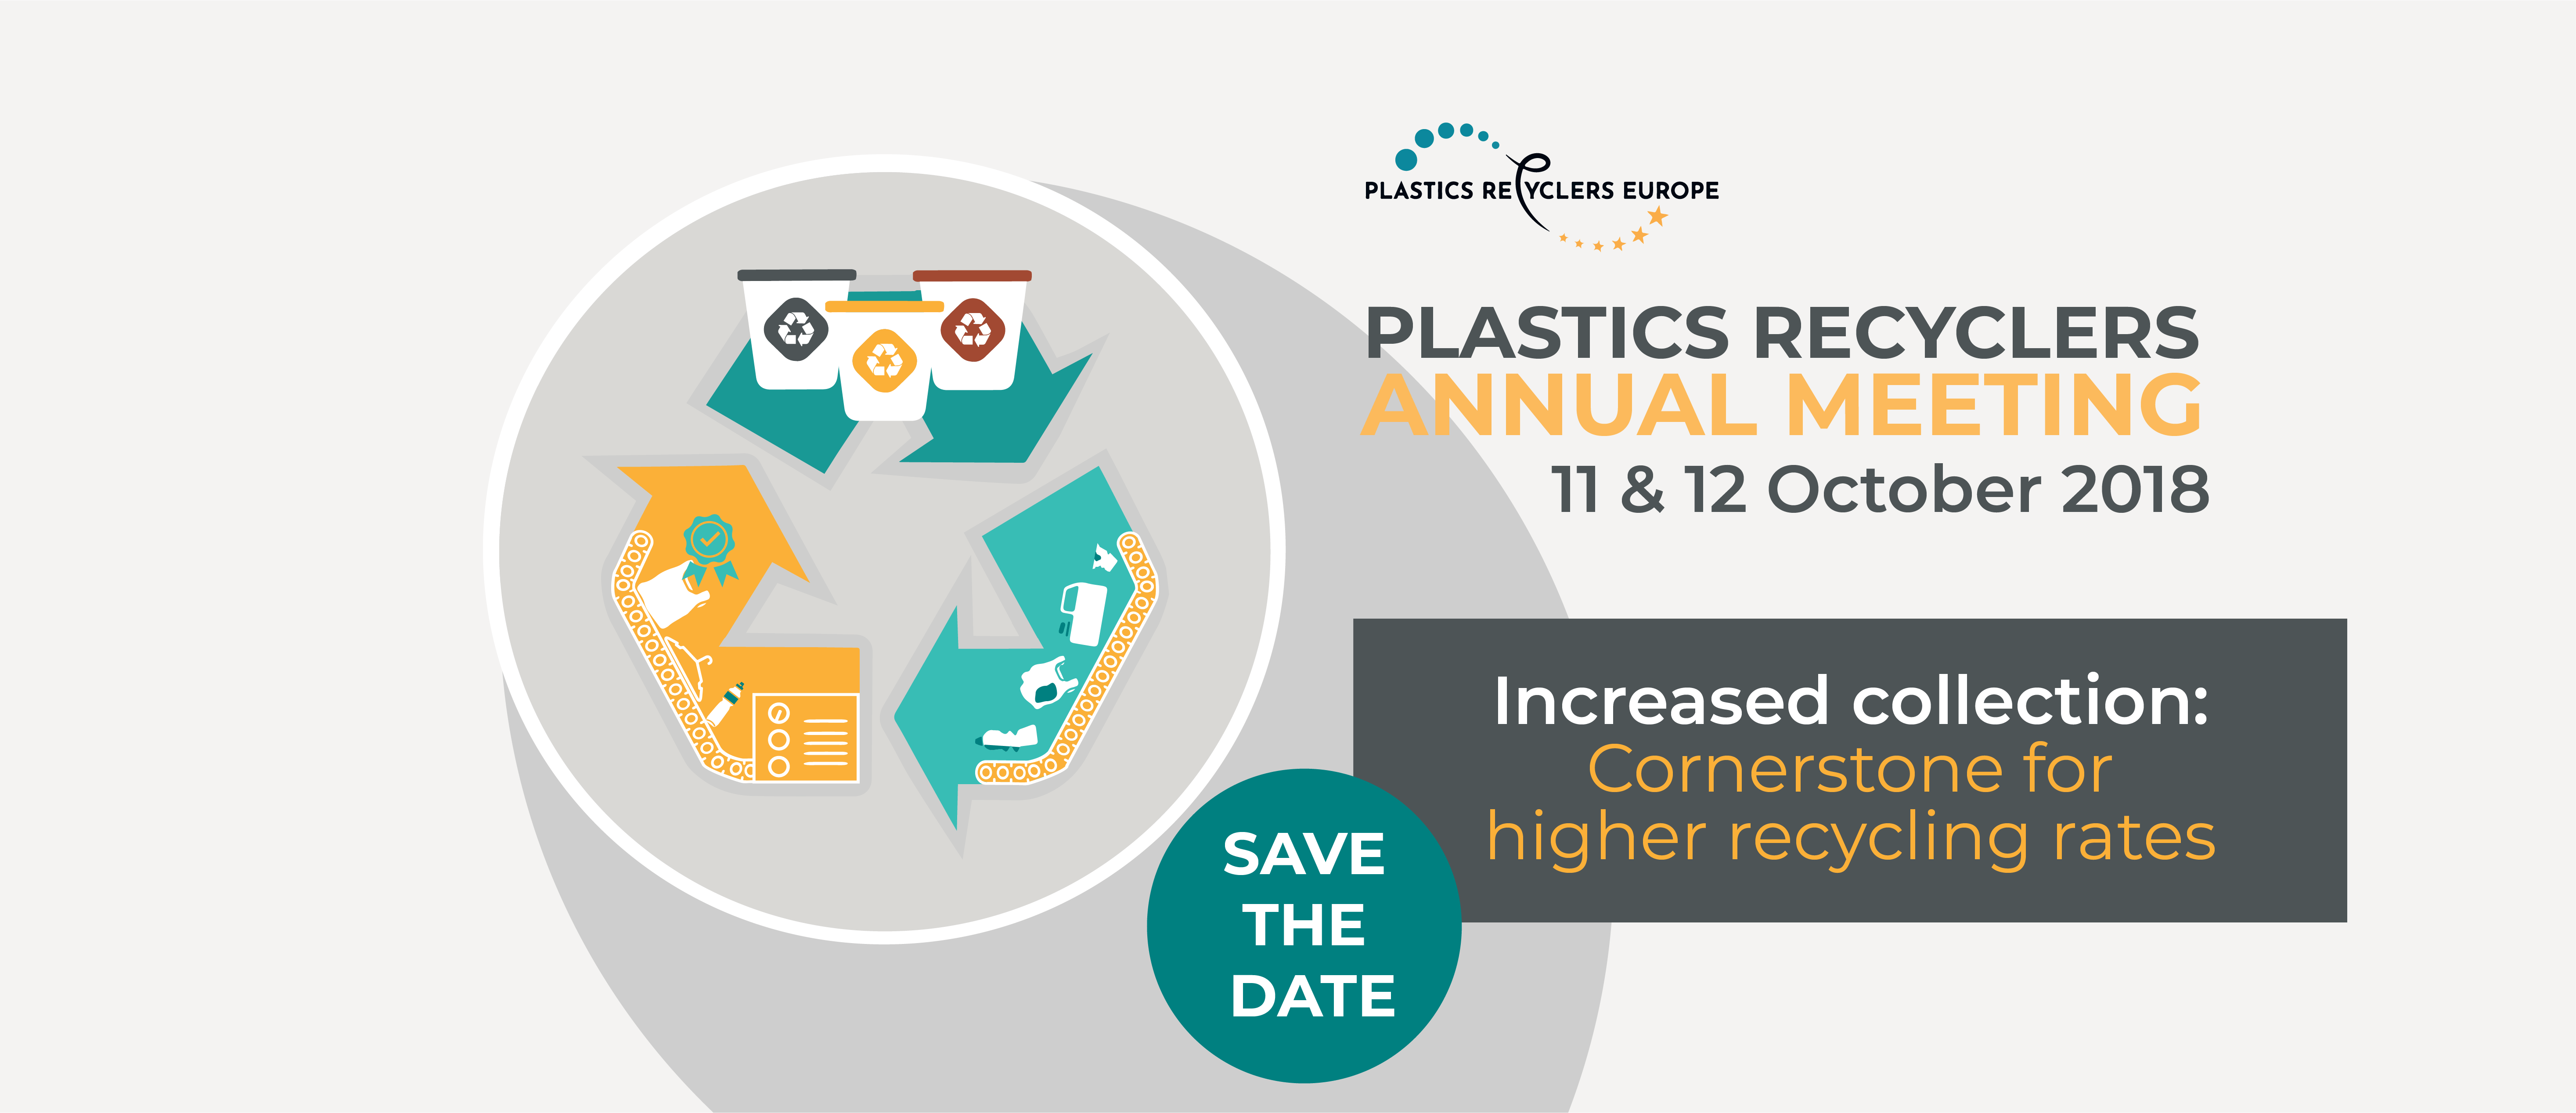 Plastics Recyclers Annual Meeting 2018 | Casc